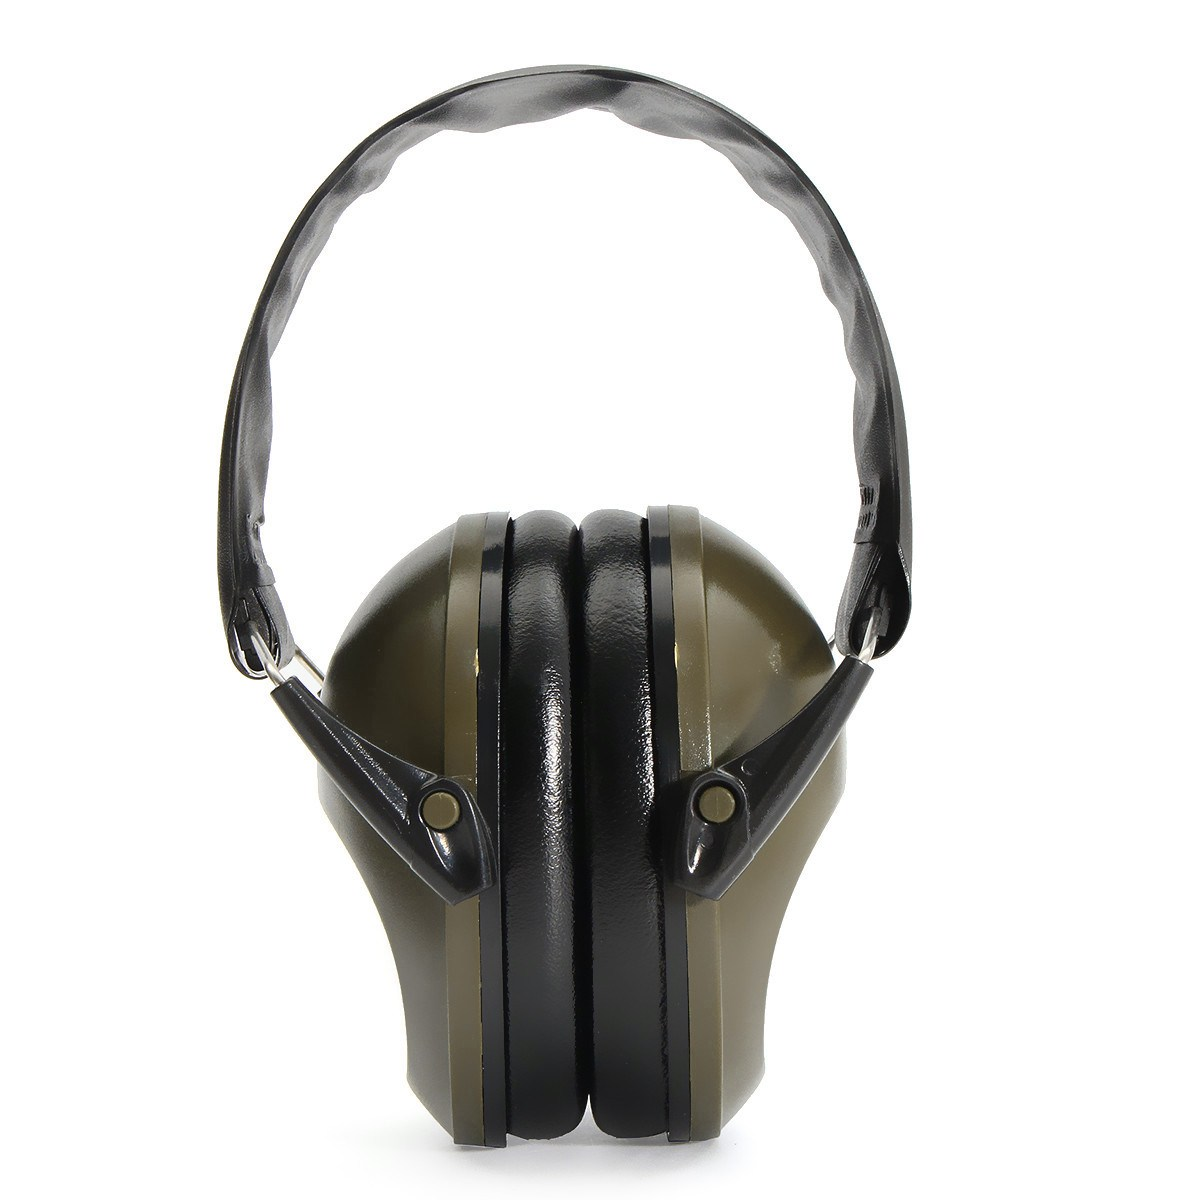 NEW Safurance Anti-noise Ear Muff Hearing Protection Soundproof Shooting Earmuffs Earphone Noise Redution Workplace Safety anti noise wearable soundproof noise airport tactical outdoor hunting shooting hearing protection earmuffs earphone